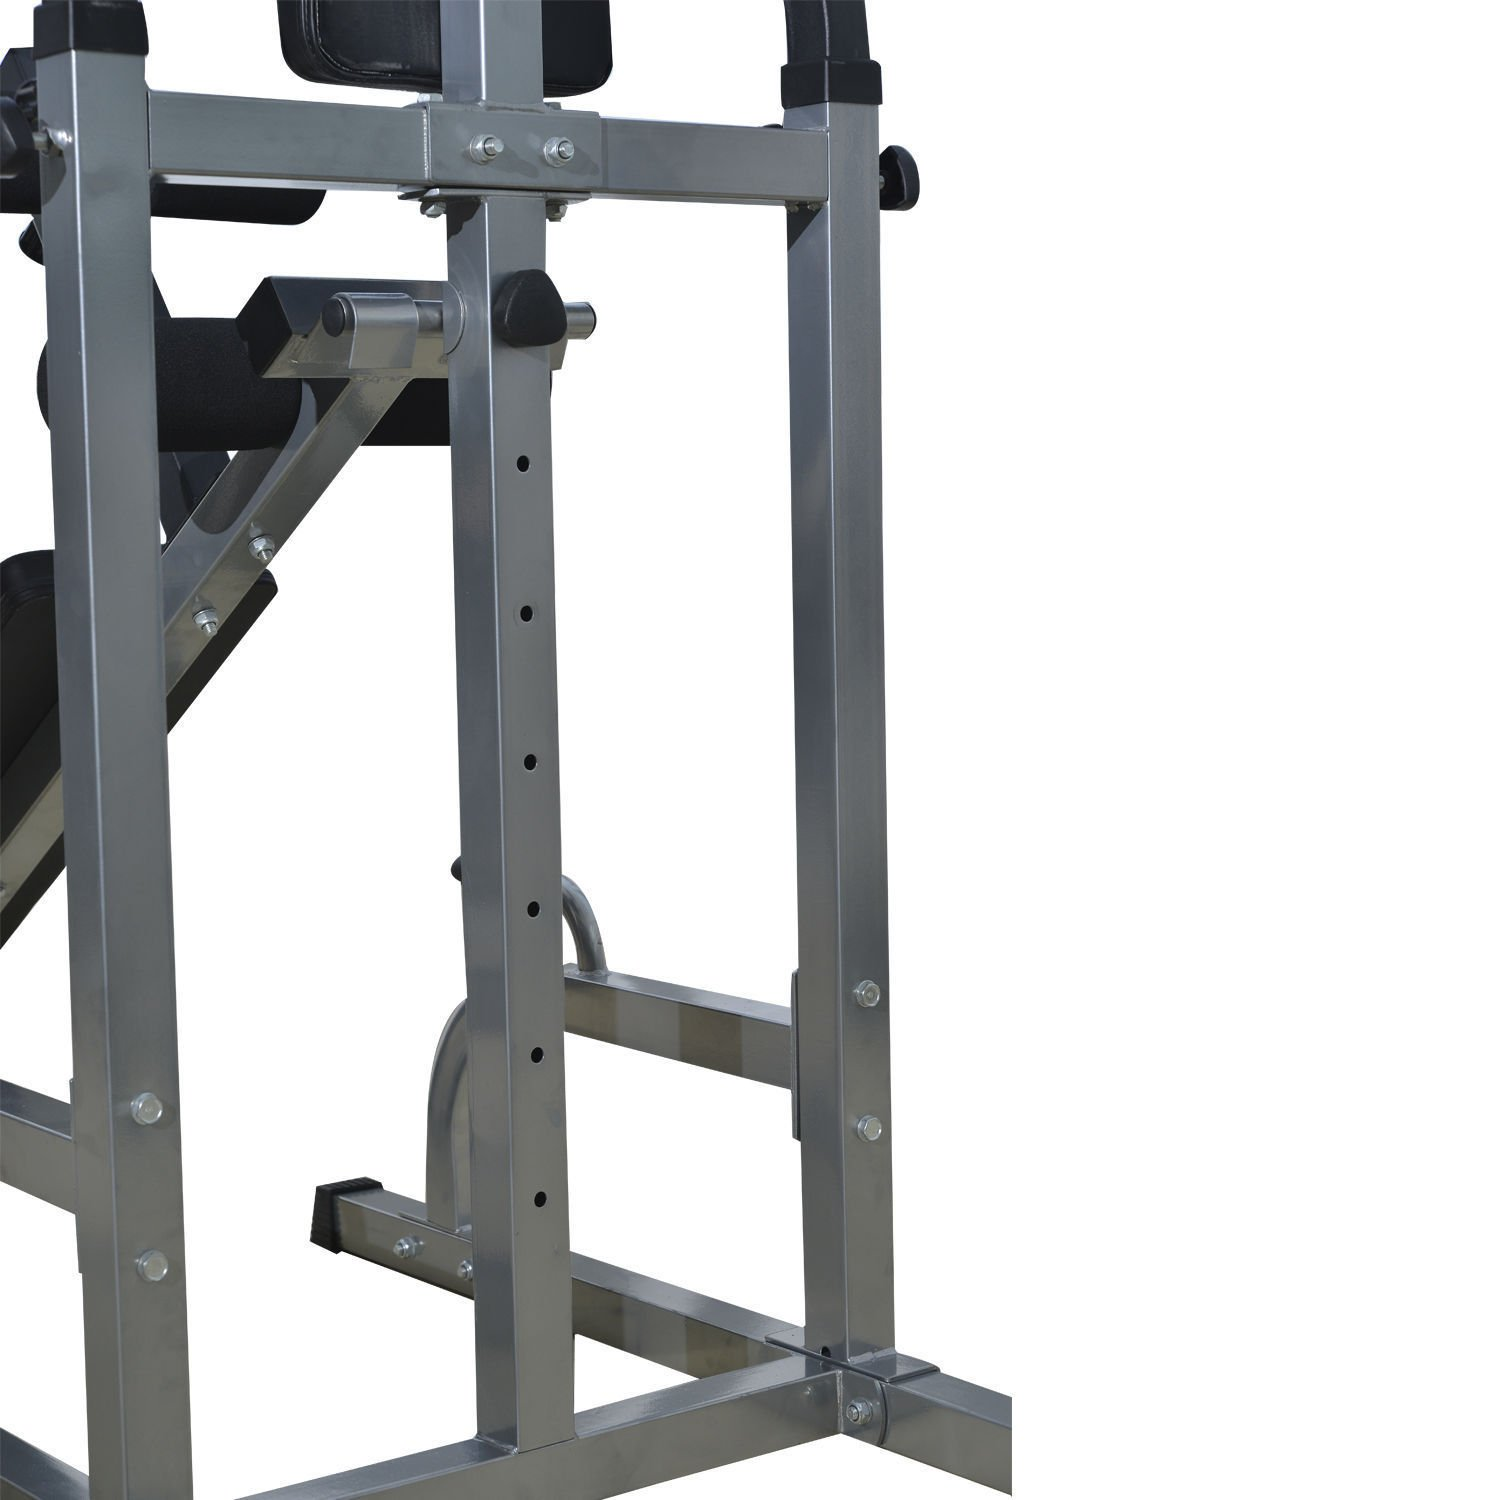 Home Gym Workout Strength Fitness Training Power Tower Dip Station Weight Bench by Happybeamy (Image #4)